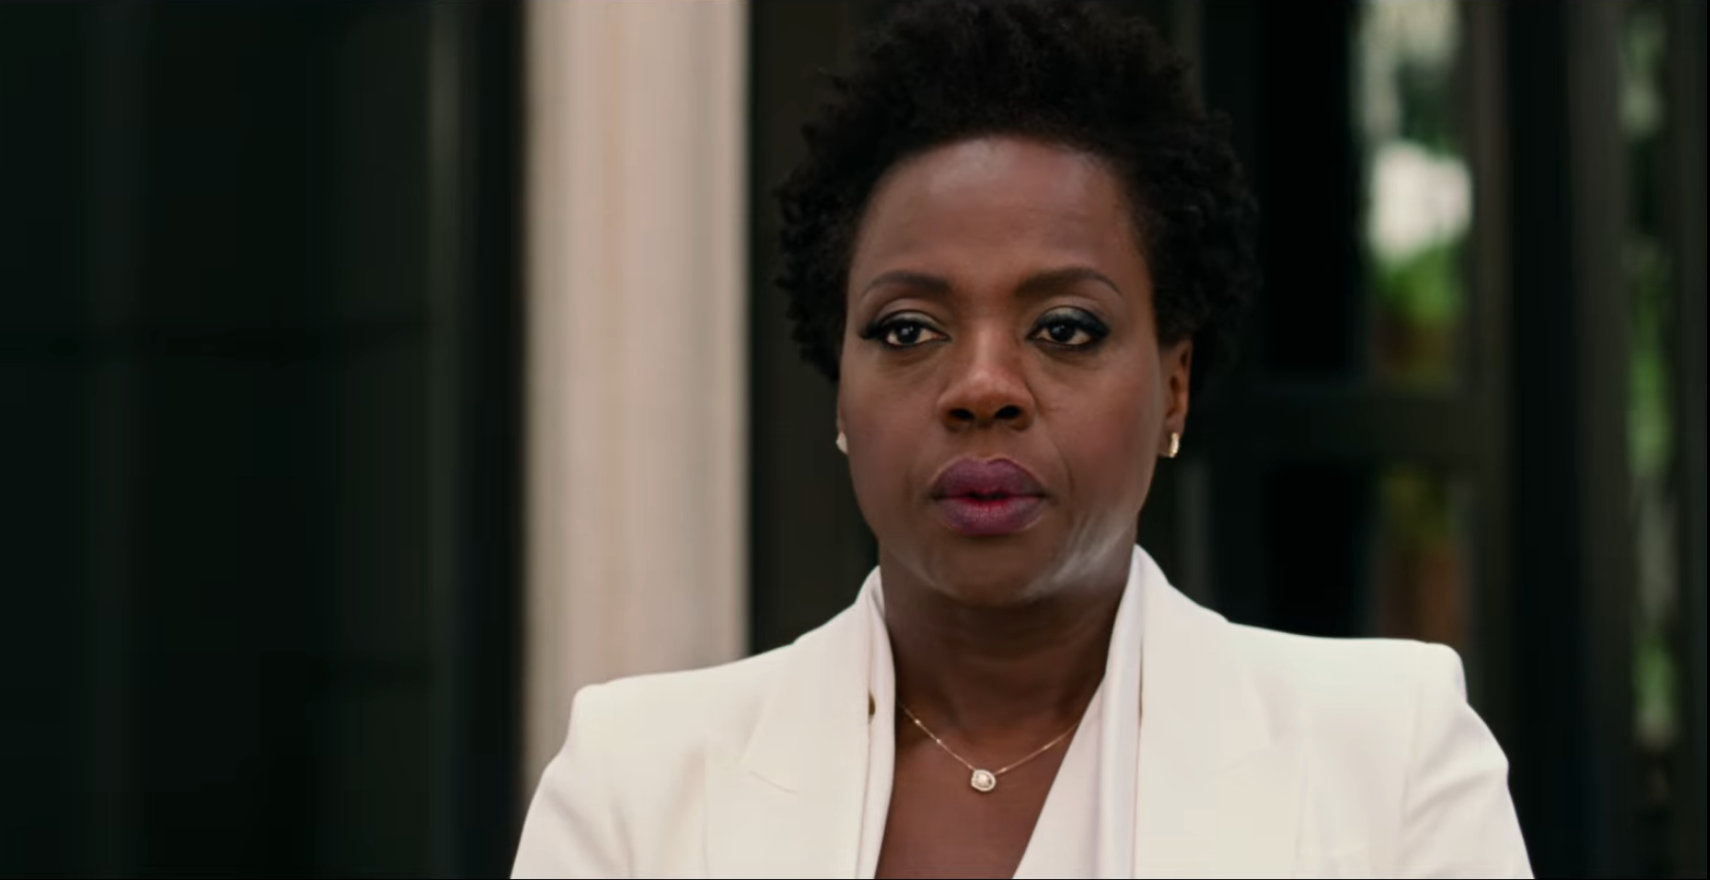 The Trailer For 'Widows' Is Here So Let's Go Ahead And Give Viola Davis And Steve McQueen All The Awards